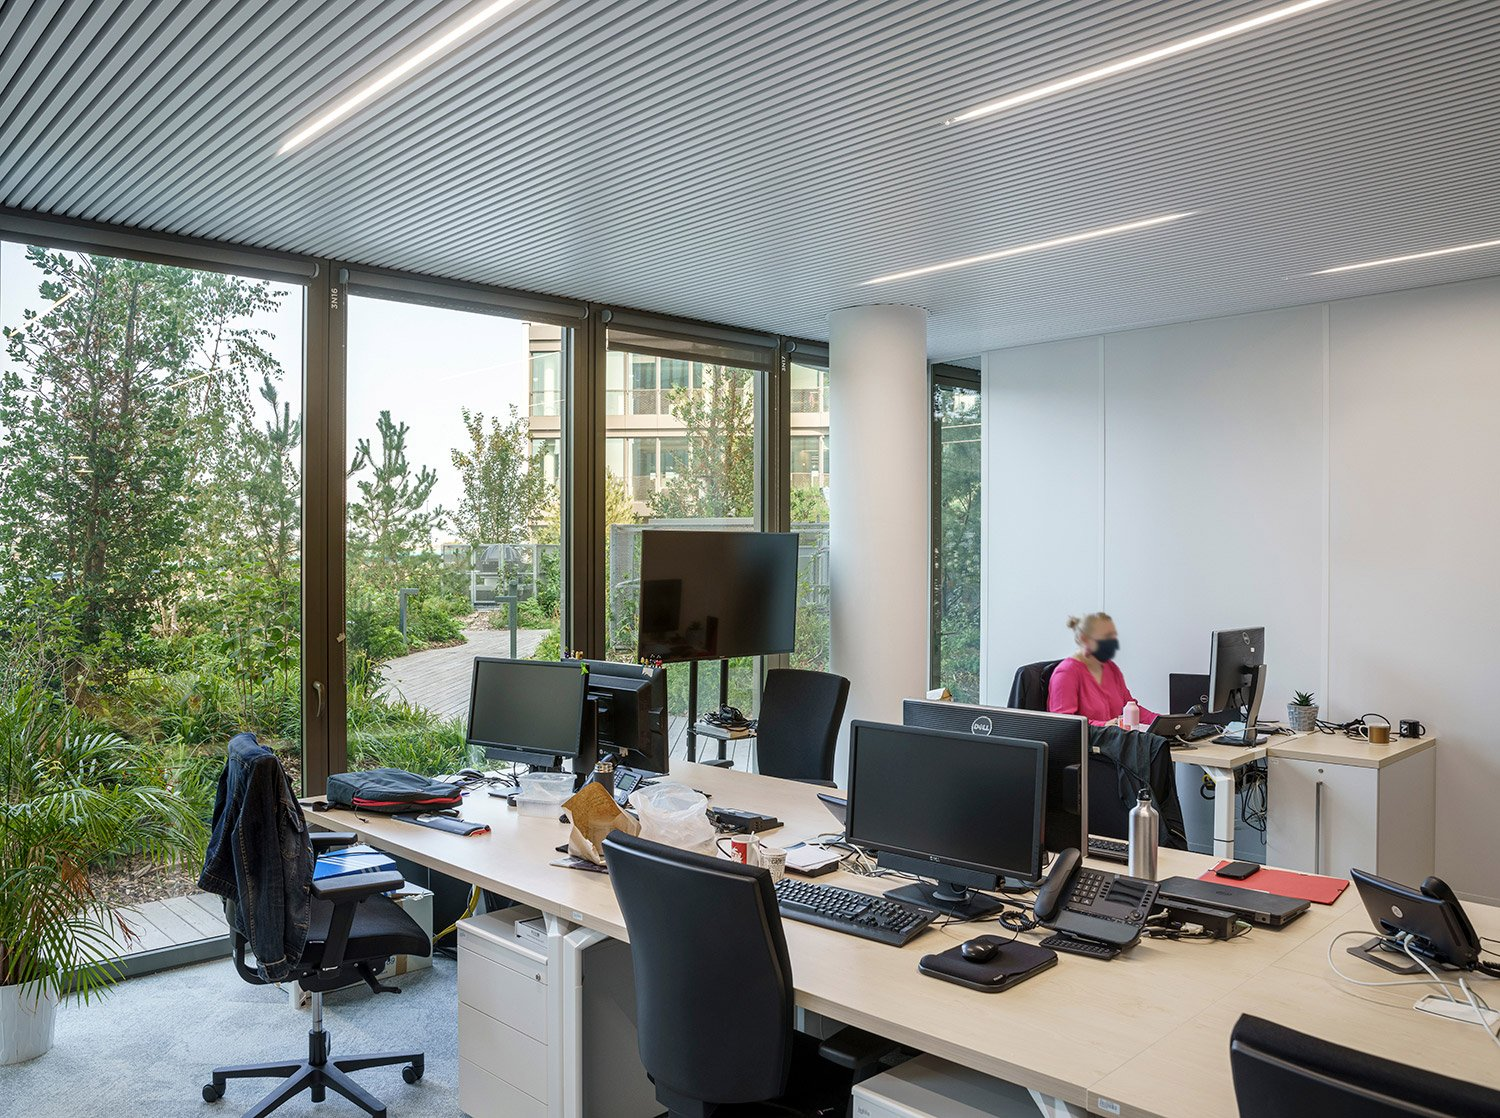 Light, air, and vegetation contributes to wellbeing of the municipal workers of Lille © Javier Callejas Sevilla